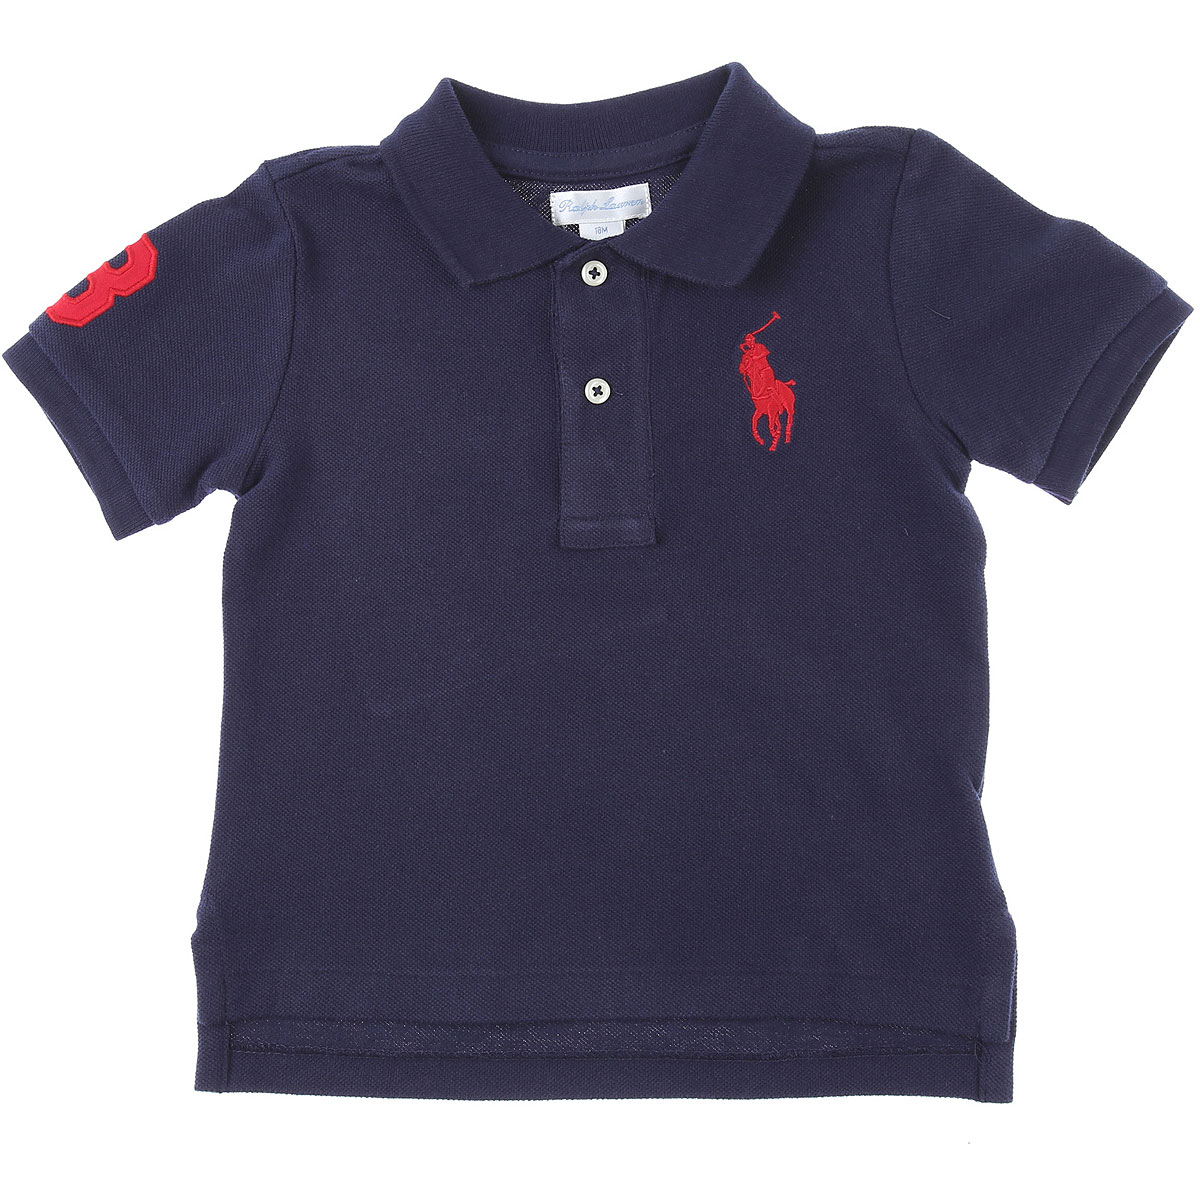 Ralph Lauren Baby Polo Shirt for Boys On Sale, navy, Cotton, 2019, 12 M 18M 2Y 6M 9M